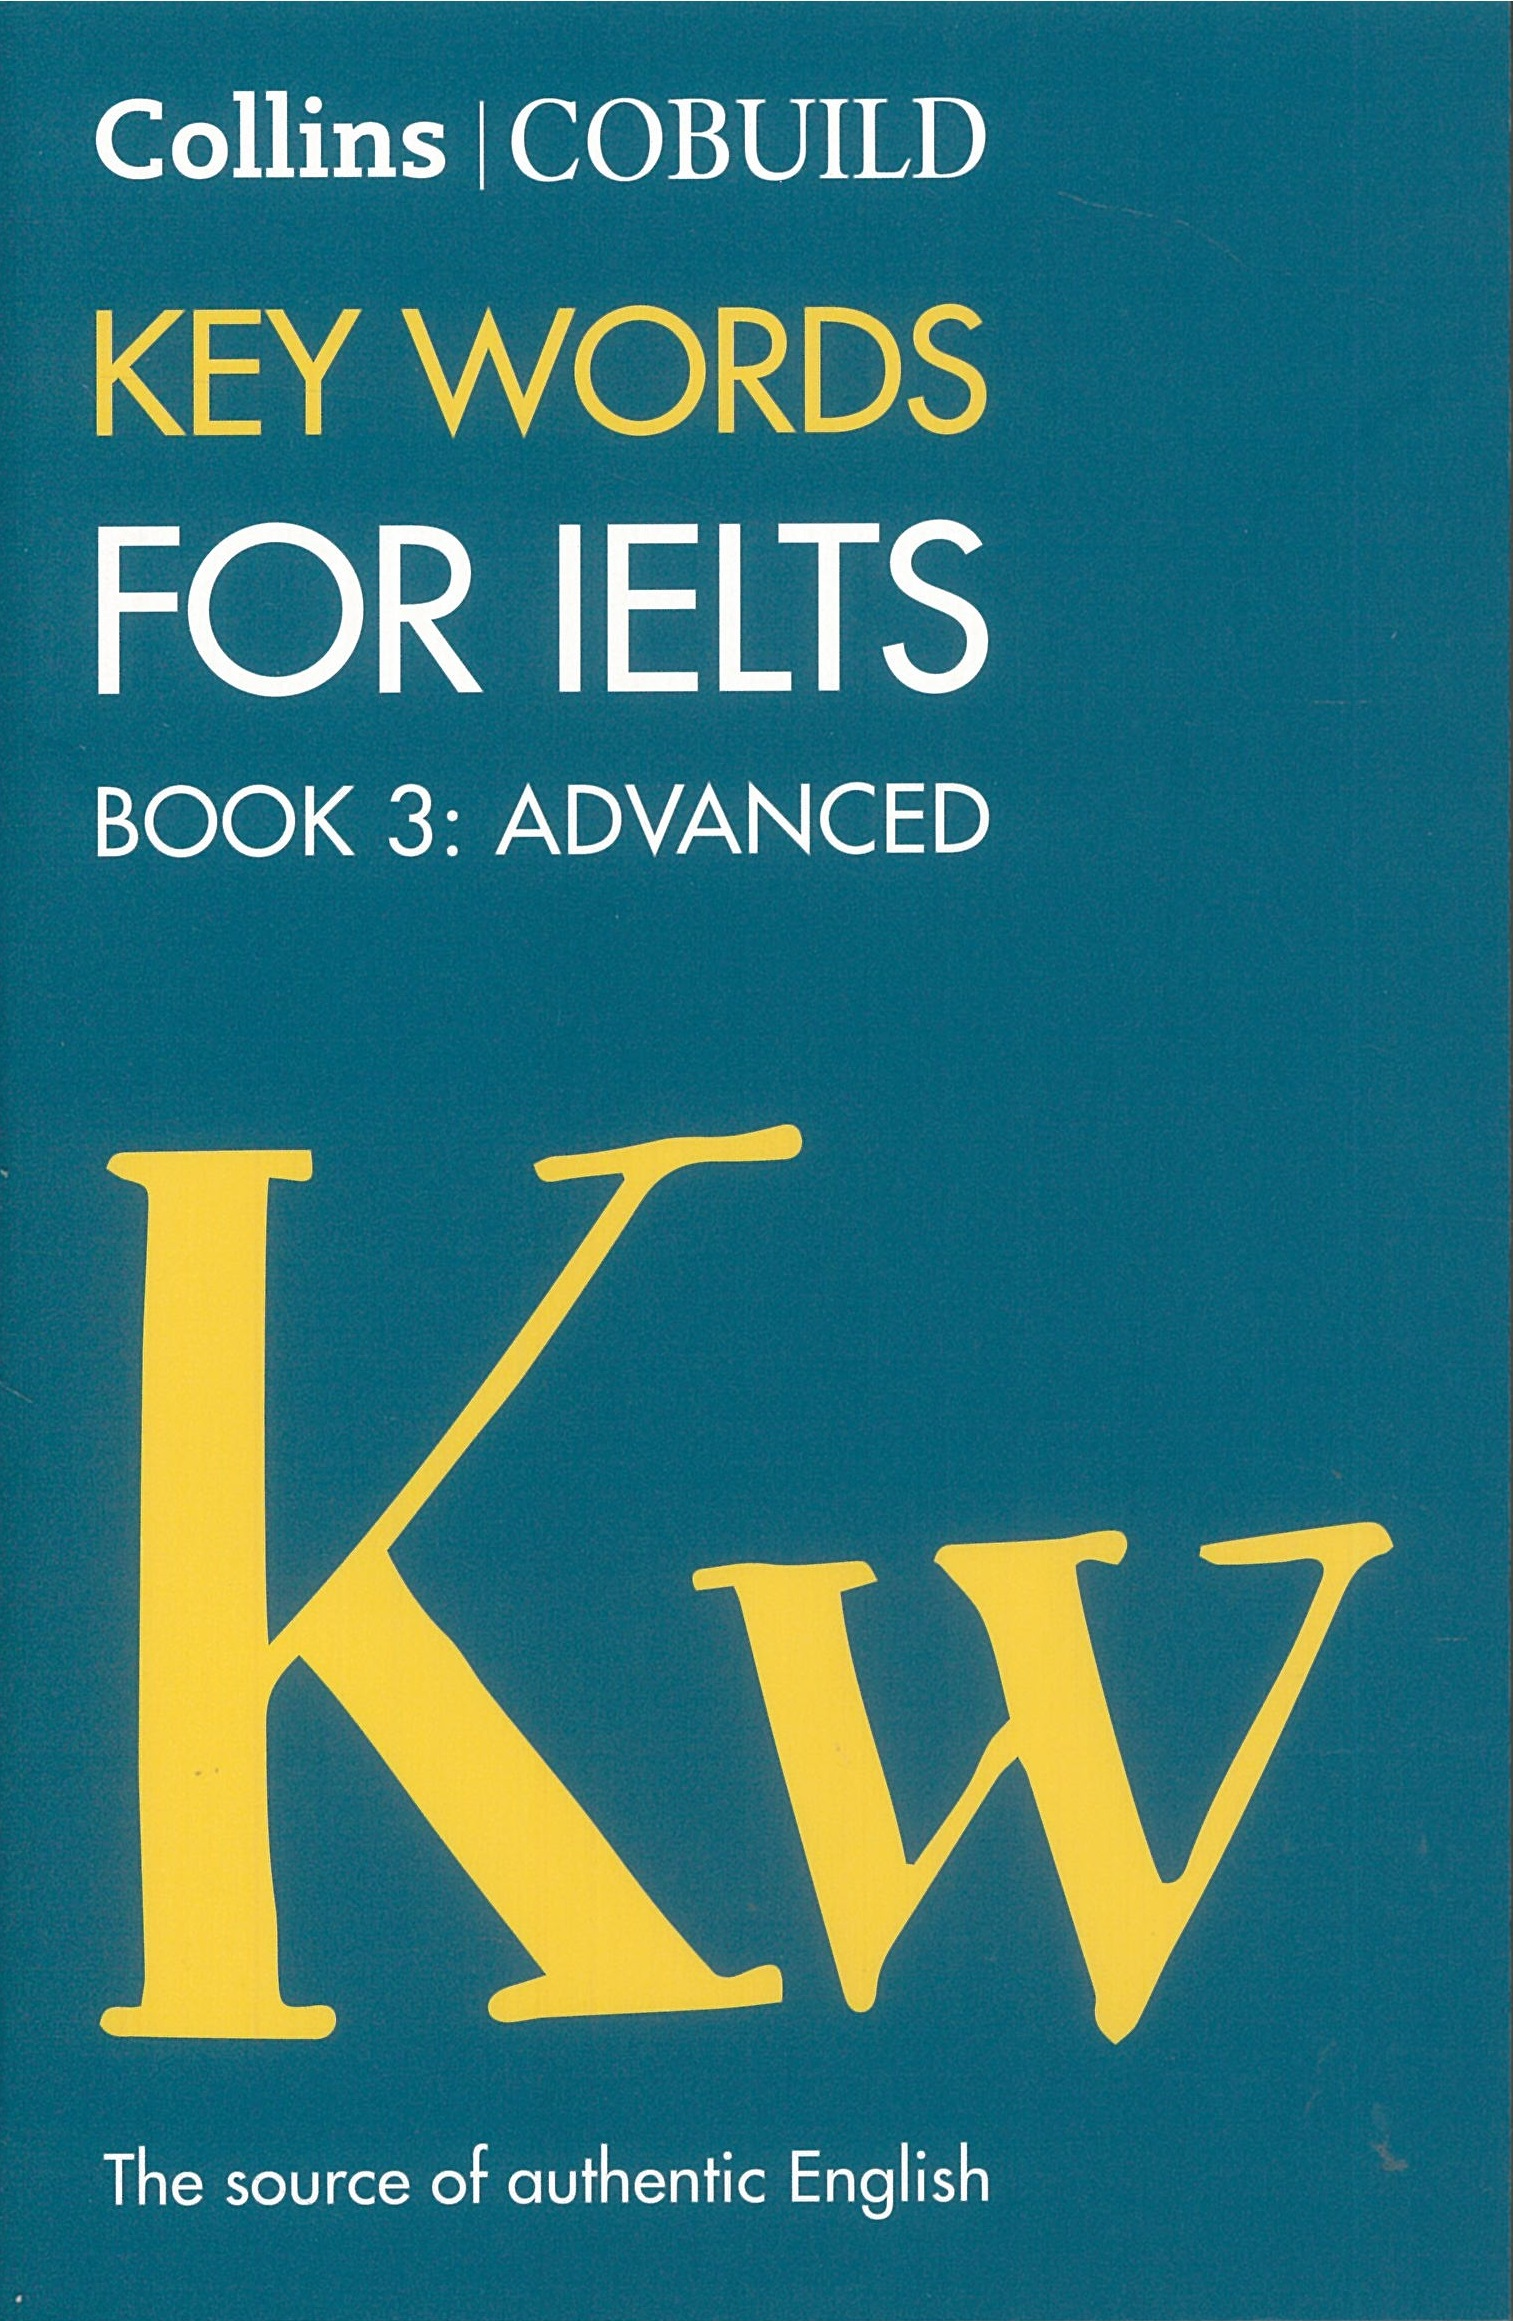 Books Kinokuniya: Grammar: IELTS 5-6+ (B1+) (Collins English